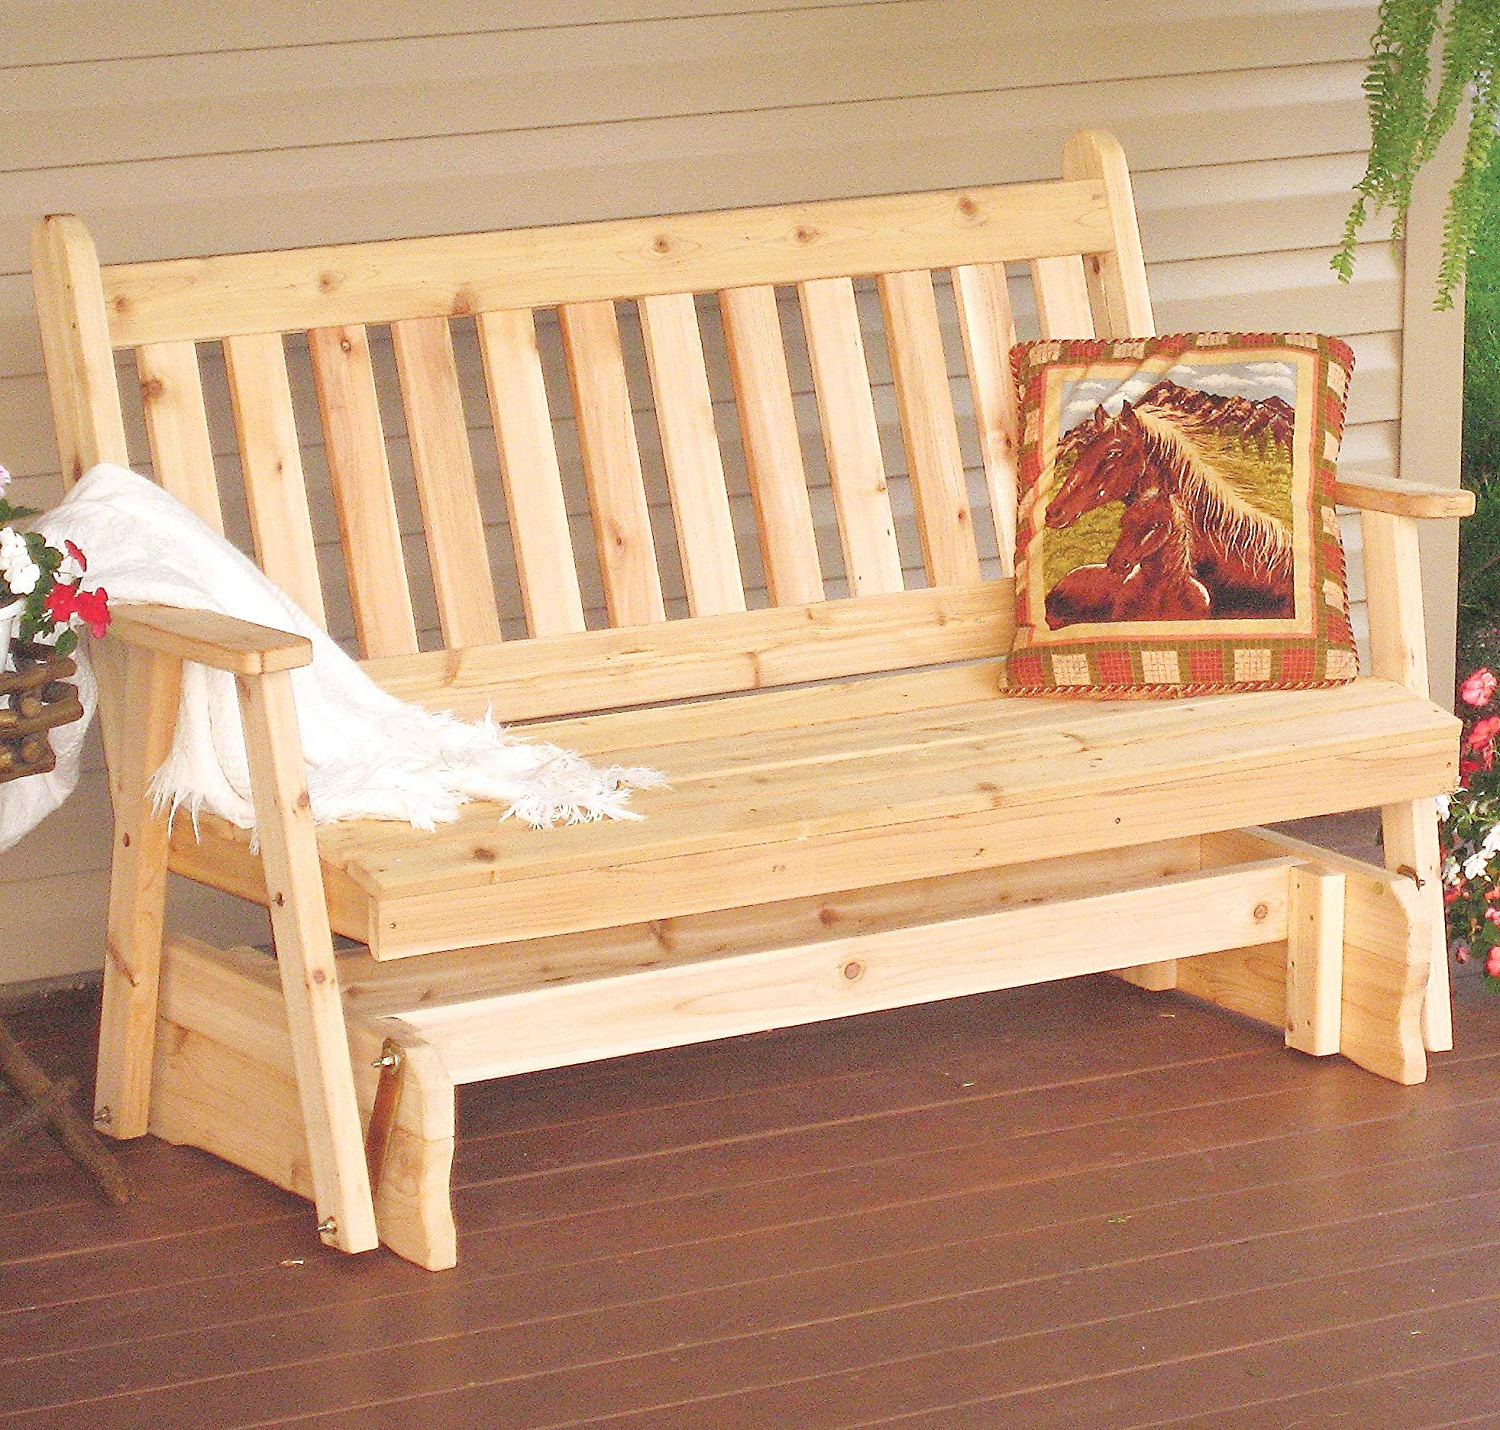 Cedar Porch Glider Bench Outdoor Patio Gliding Bench, 2 Person Wooden  Loveseat Benches, Amish Made Furniture Weather Resistant Western Red Cedar  Wood, Intended For Favorite Classic Glider Benches (Gallery 17 of 30)